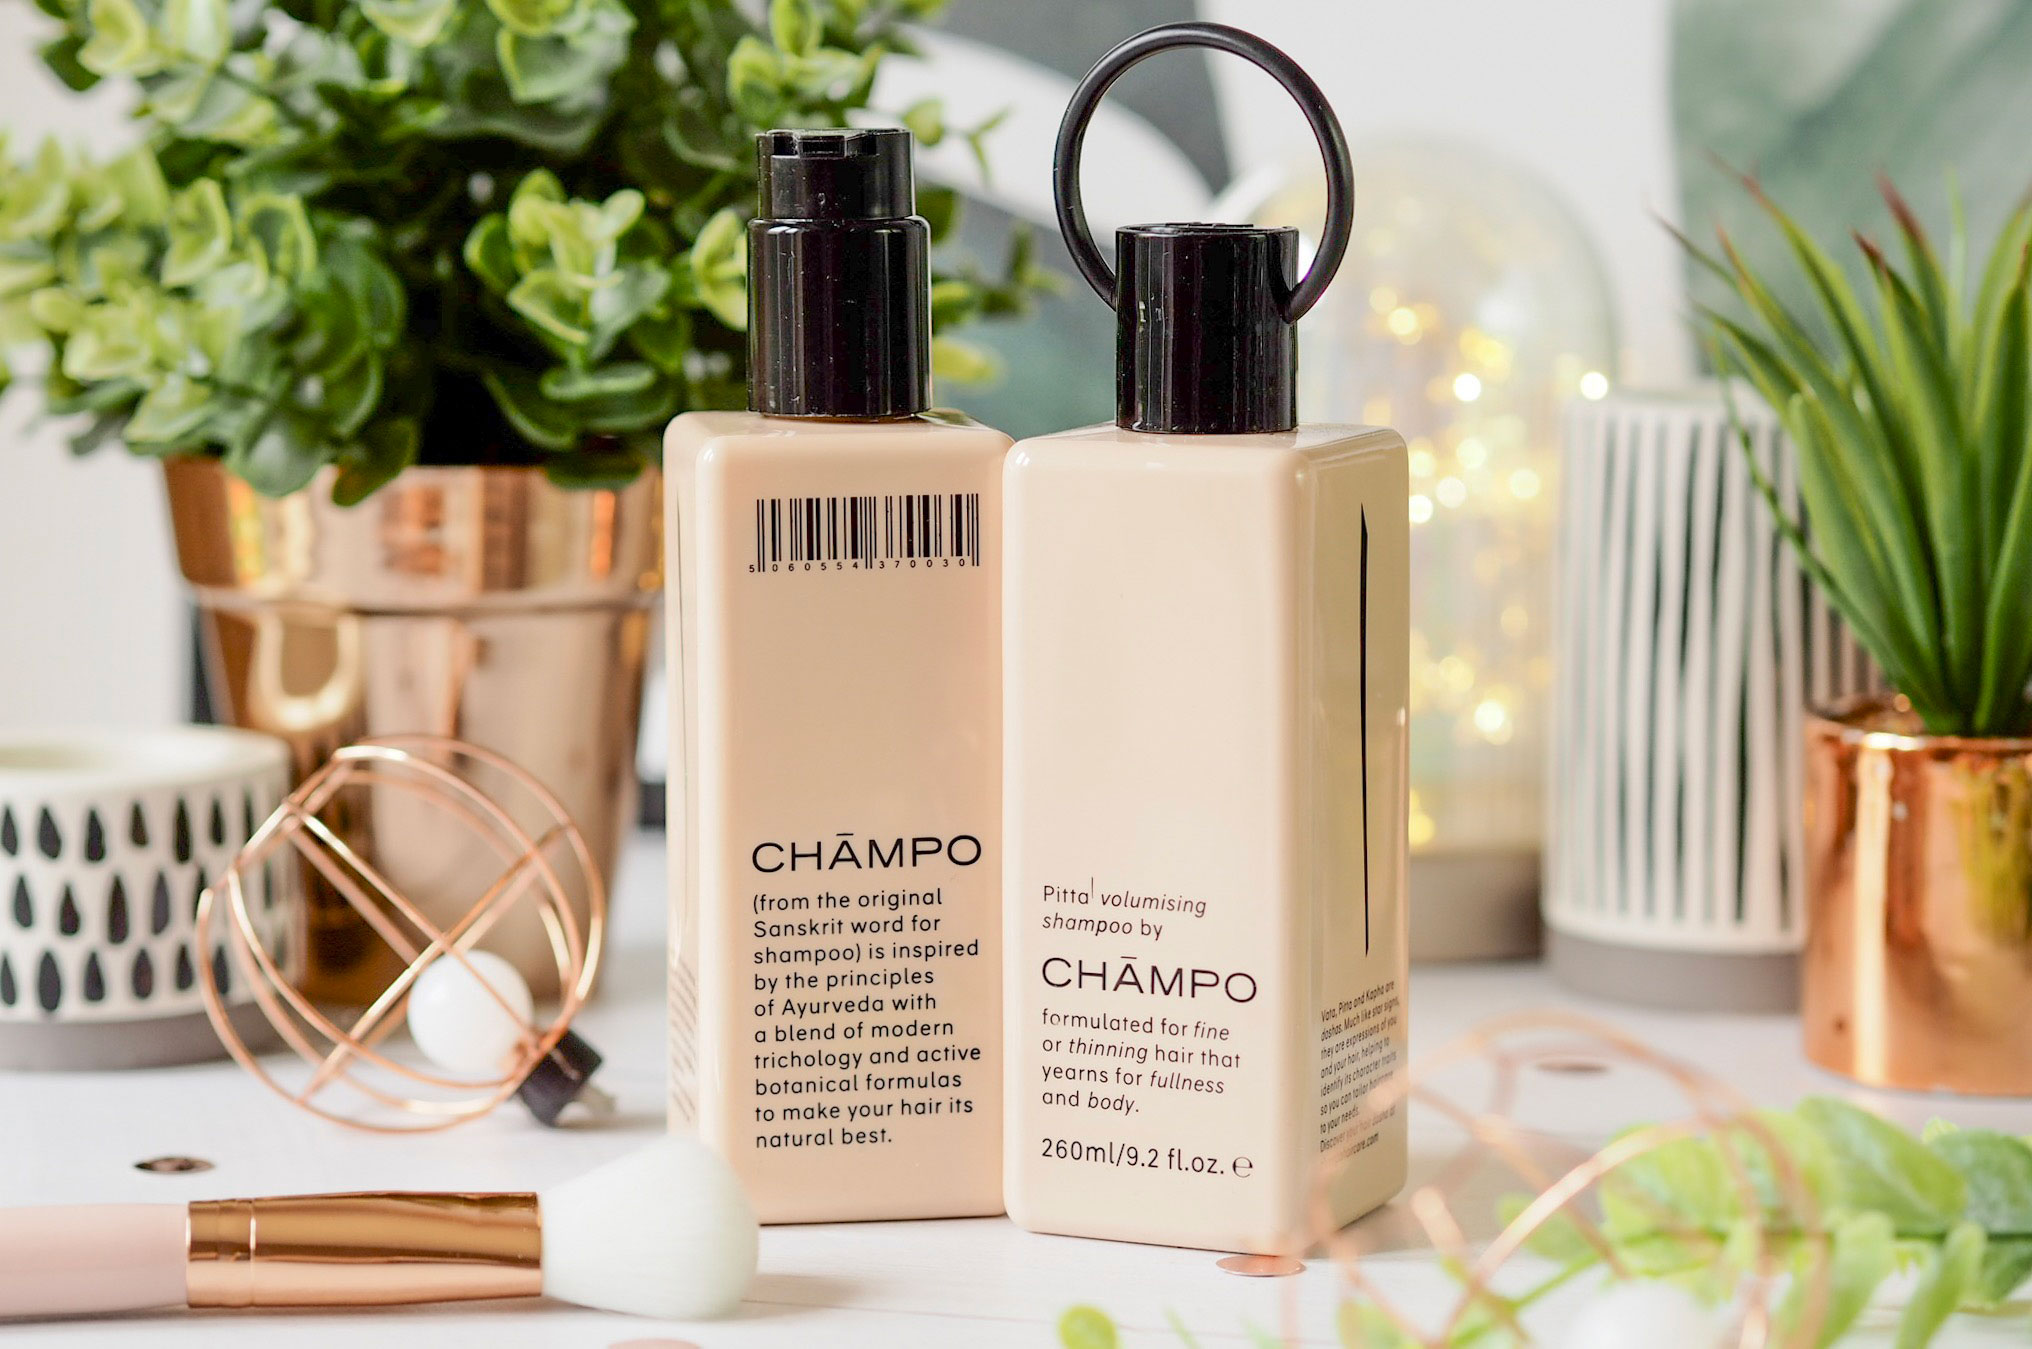 Champo Pitta Shampoo & Conditioner Review